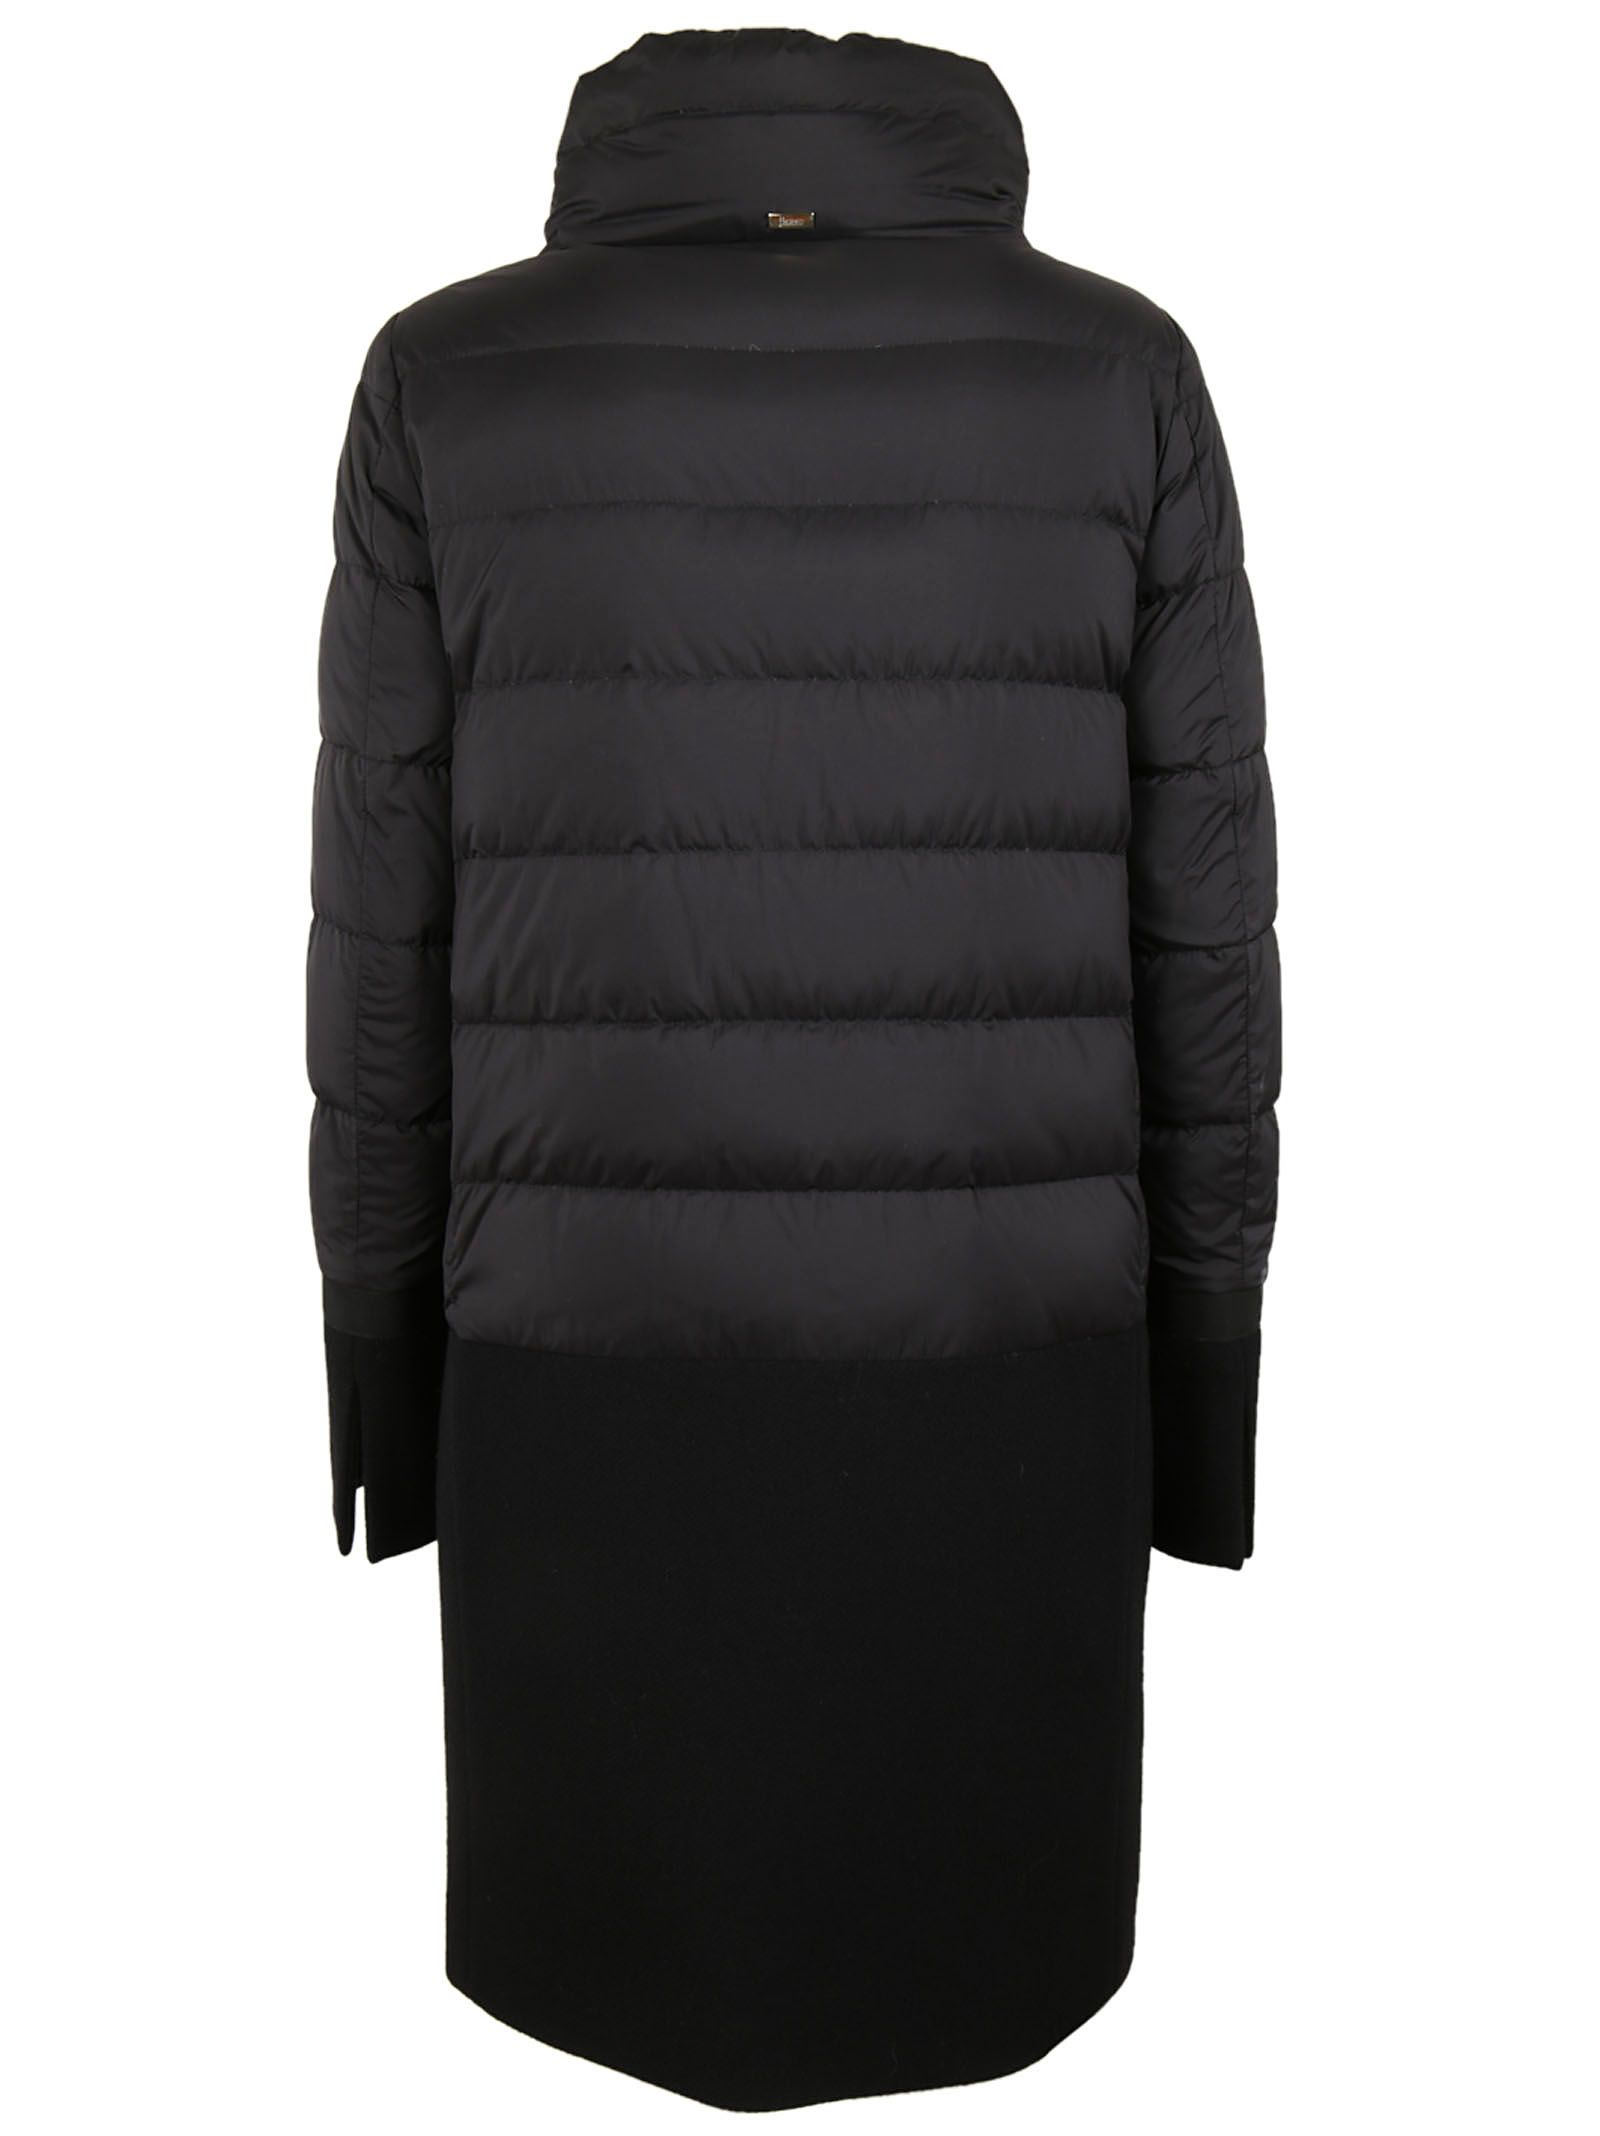 Herno - Herno Padded Coat - Black, Women's Coats | Italist